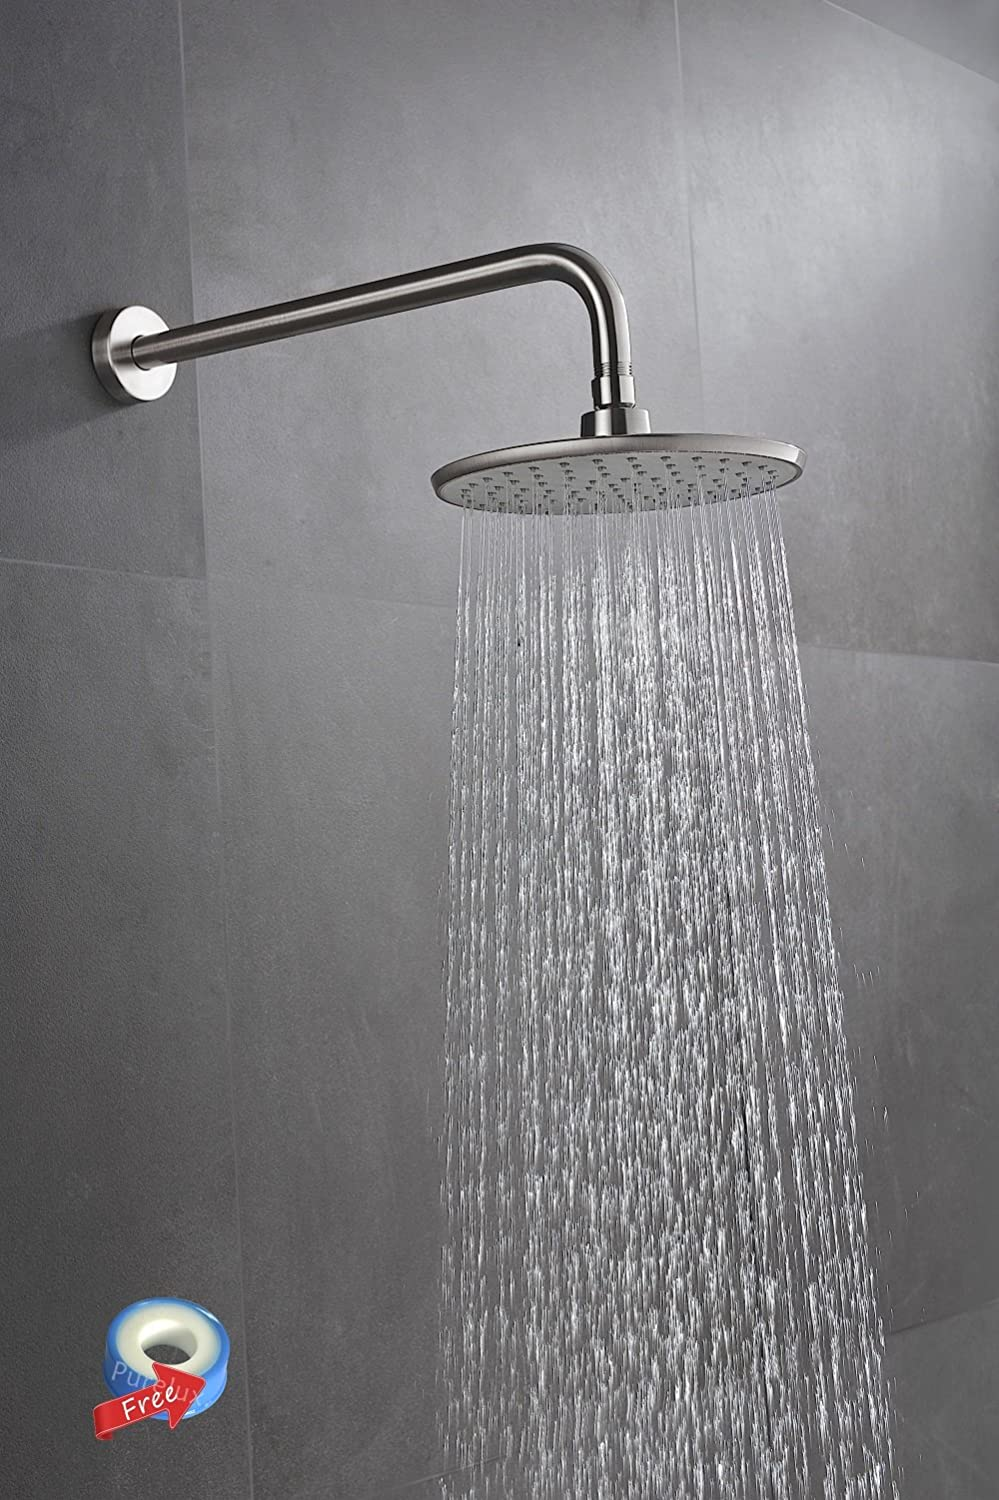 Purelux 8 Inch Modern Style Rainfall Fixed Mount Shower Head Set With 16  Inch Extra Long Stainless Steel Shower Arm, Brushed Nickel Finish 5 YEAR  WARRANTY ...